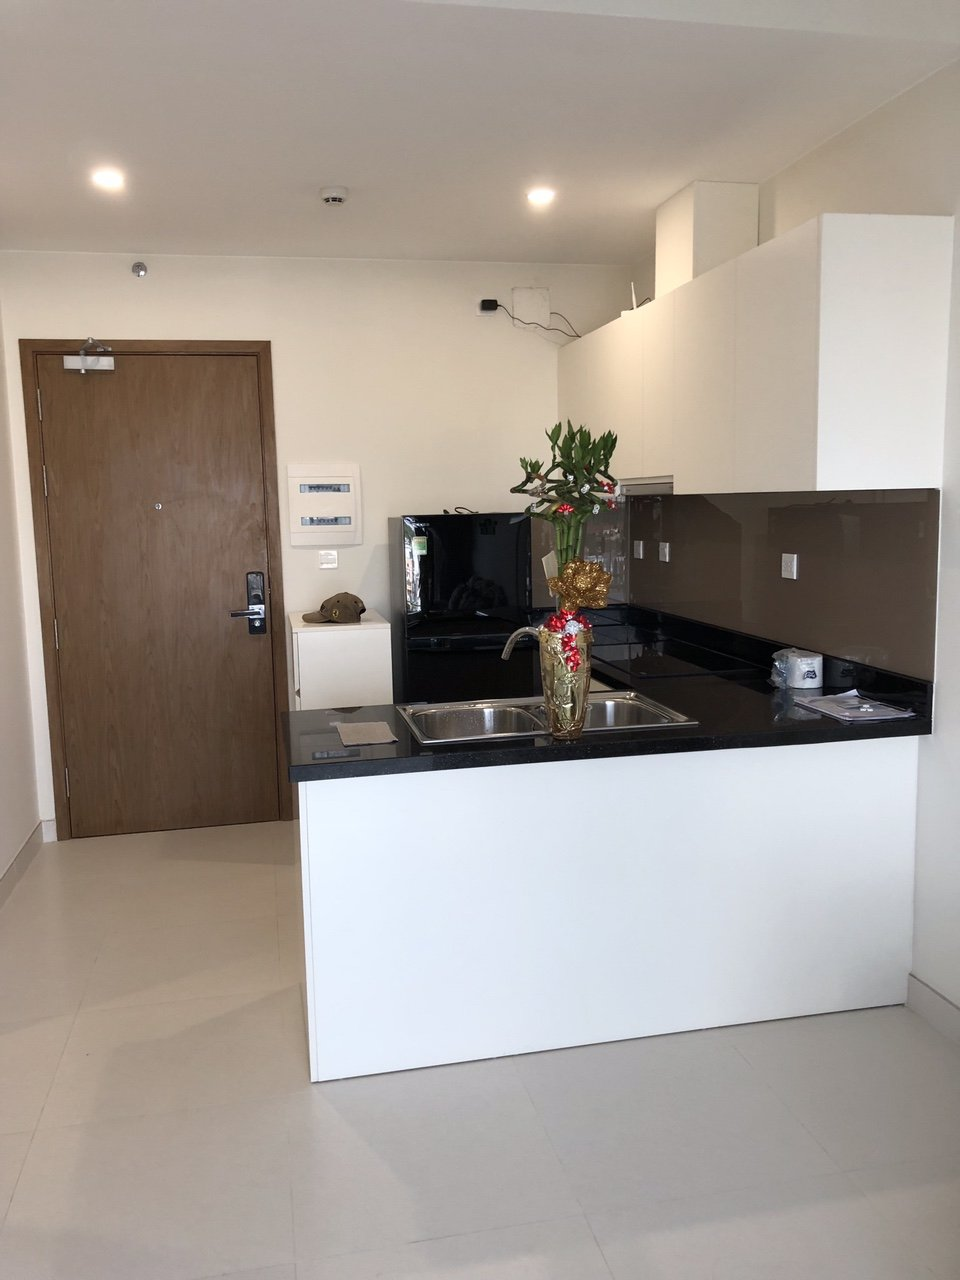 rent Diamond Lotus - 2 bedroom - 1 wc